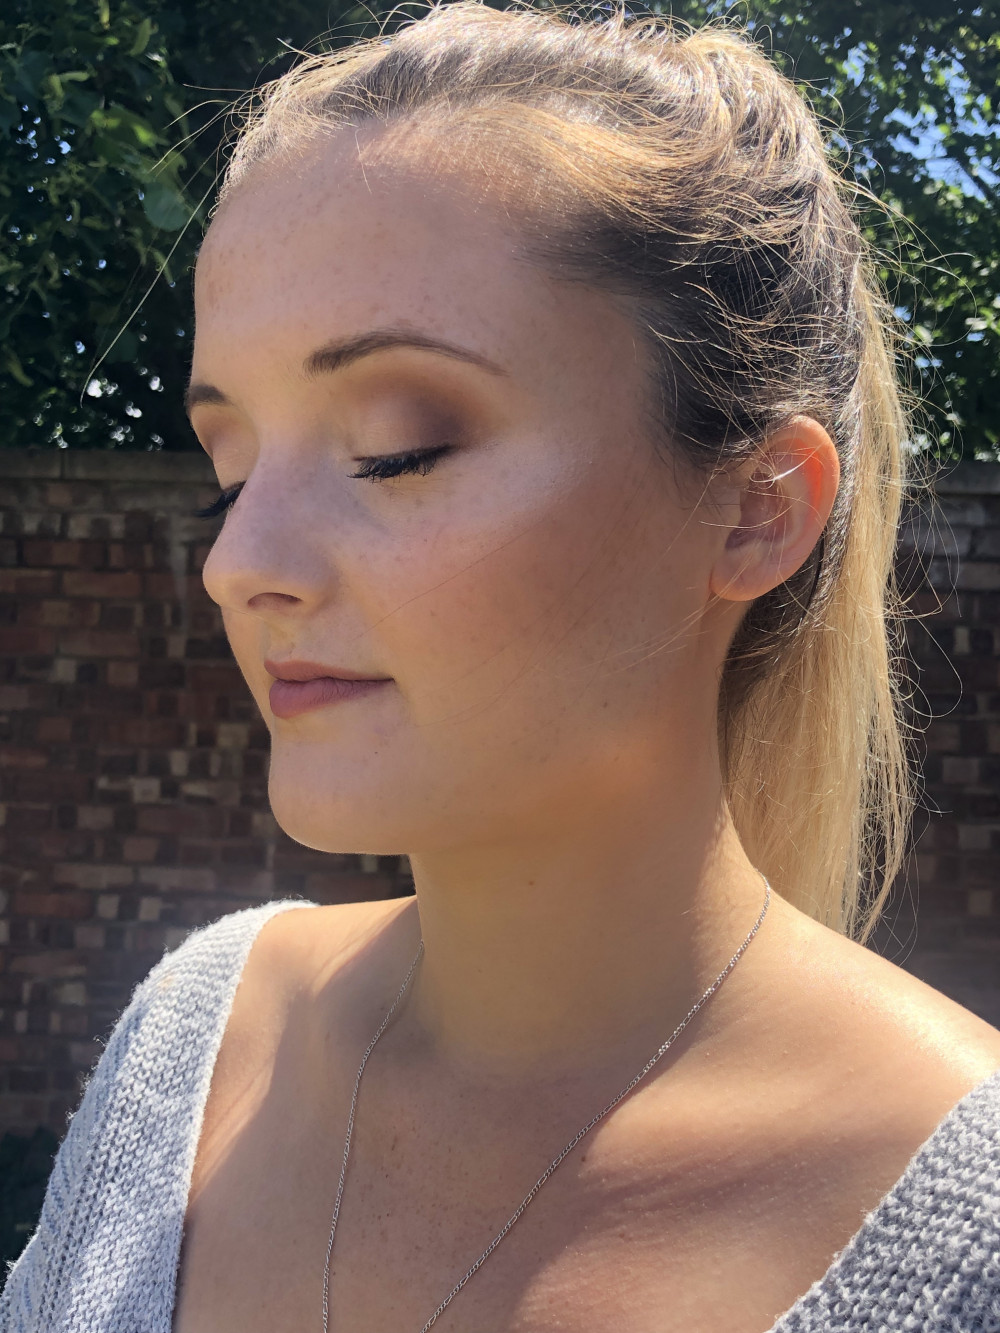 Trial makeup for a gorgeous Bride, keeping the skin glowing and fresh with a subtle smoke on the eyes - Make Me Bridal Artist: Gemma Davey Makeup. #naturalmakeup #bridalmakeup #glowingskin